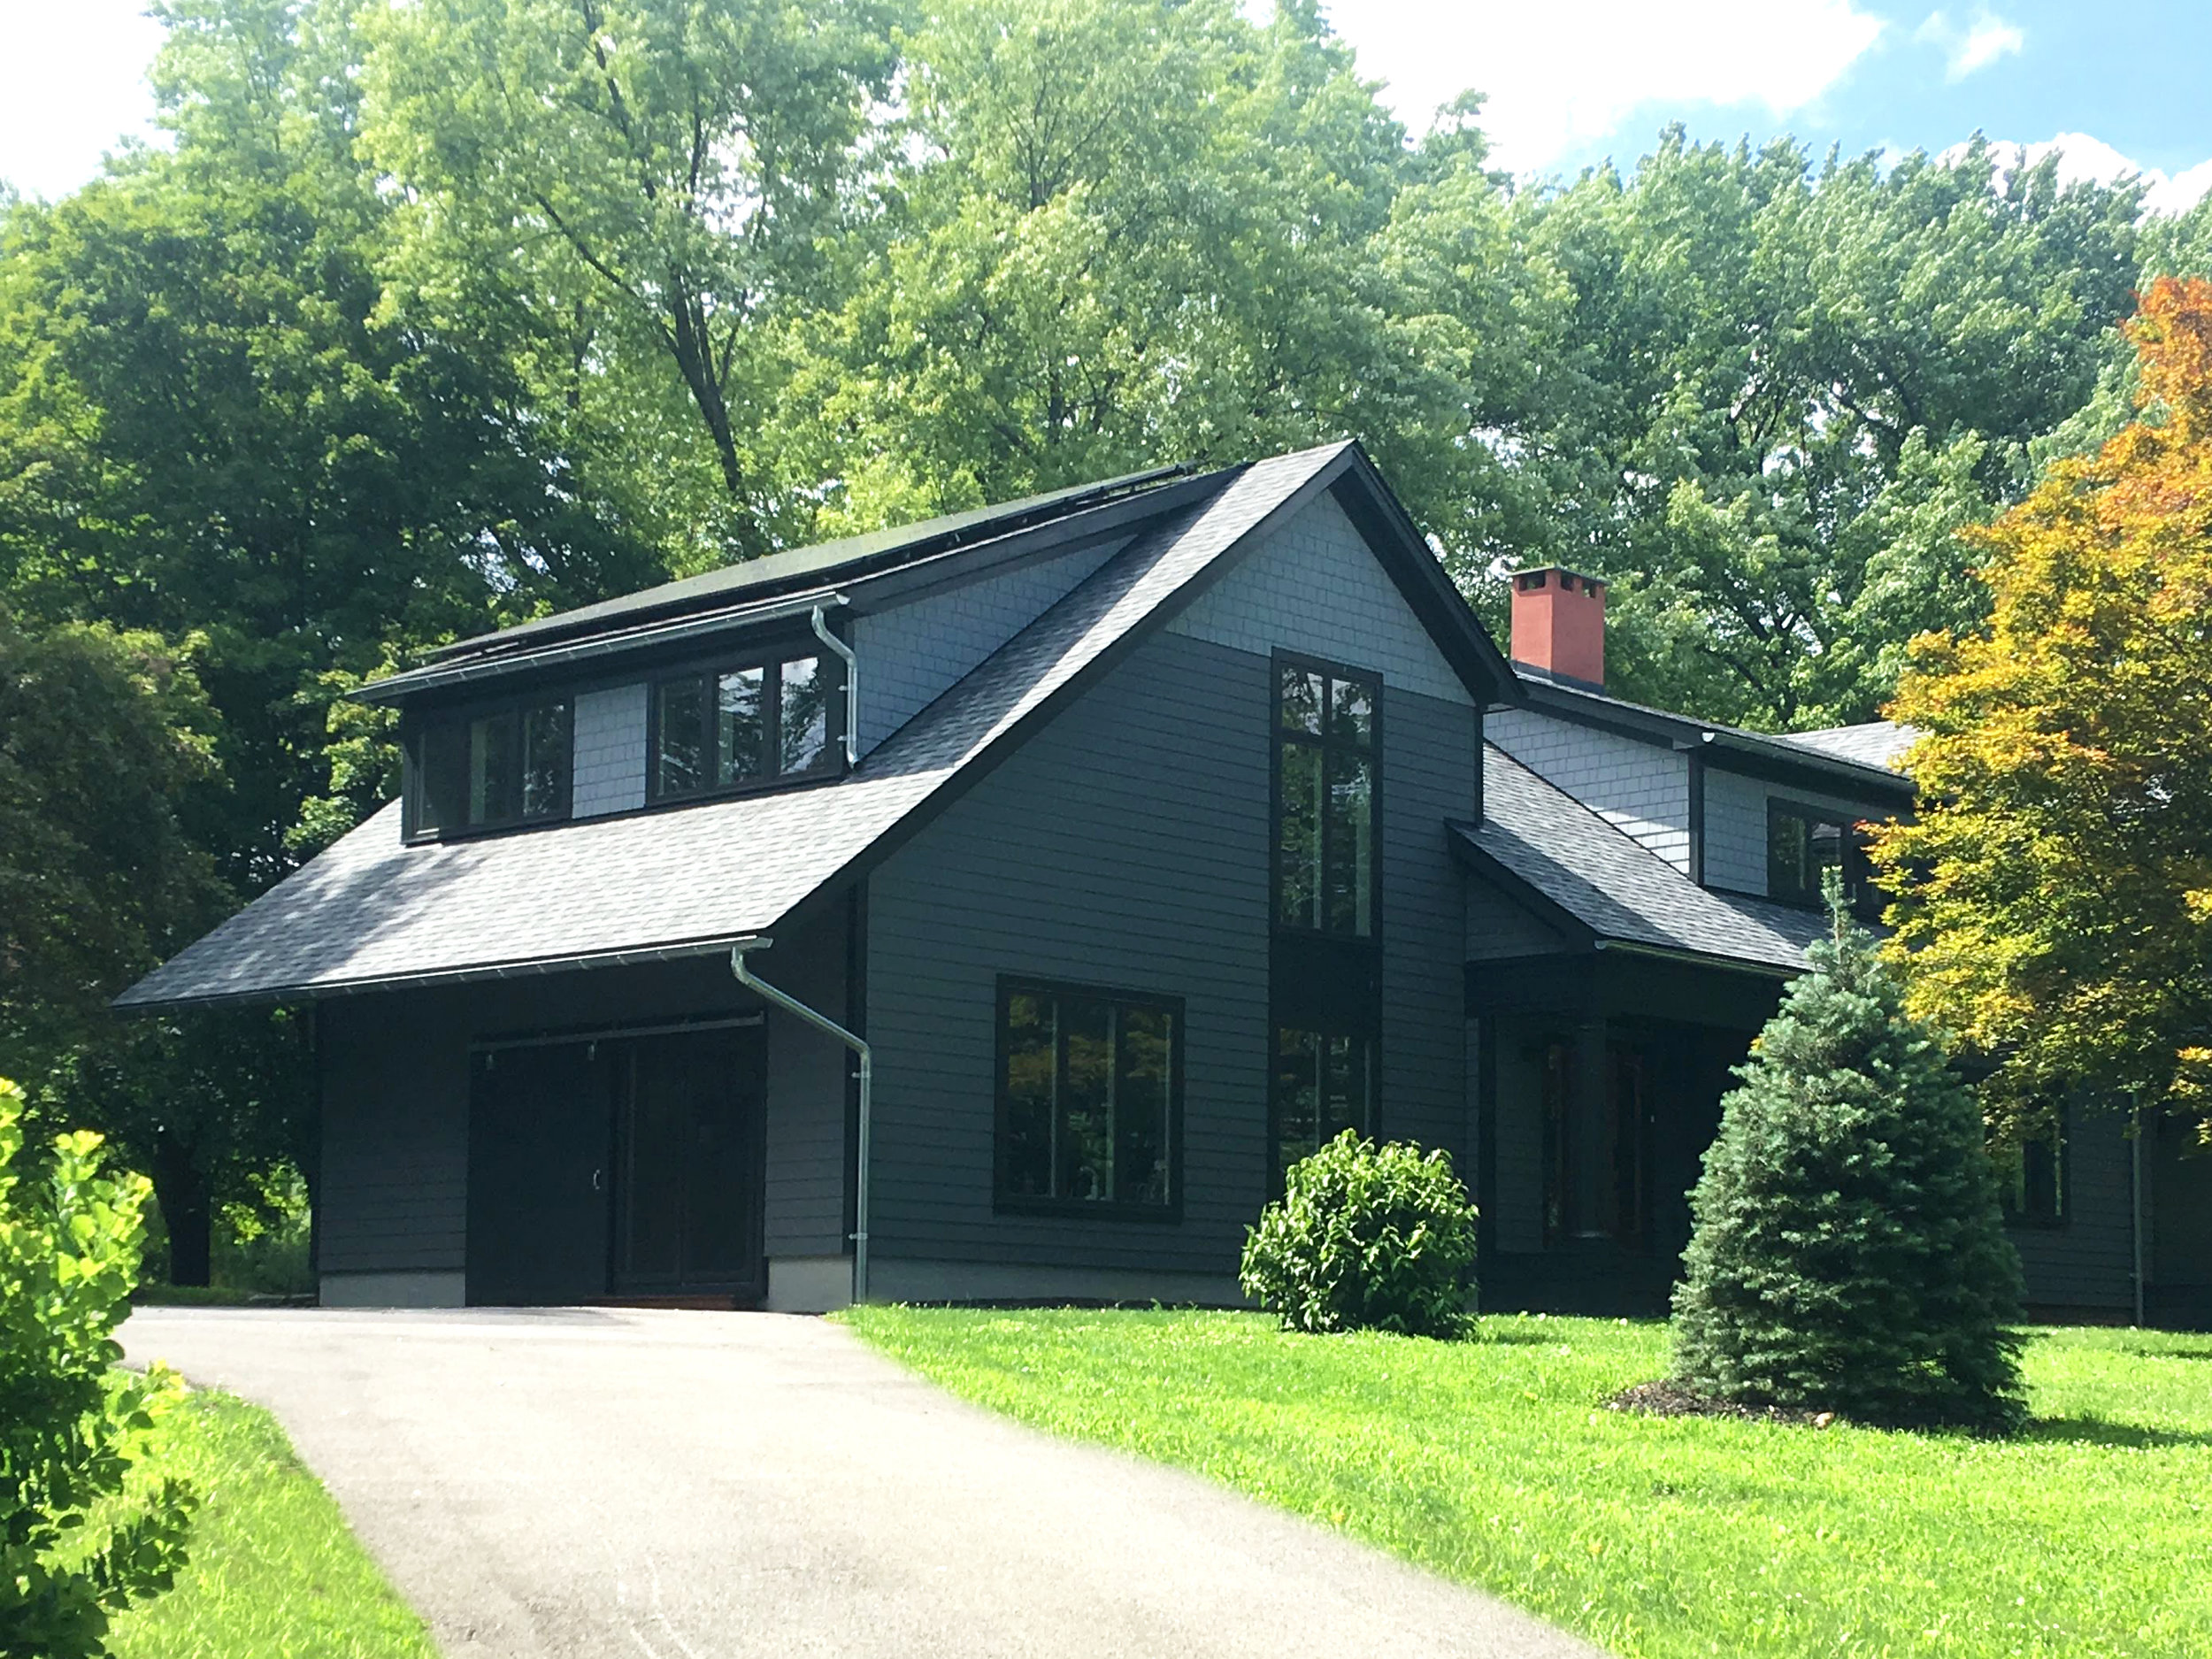 Shingle Style House Rebuild - Stone Ridge, NY